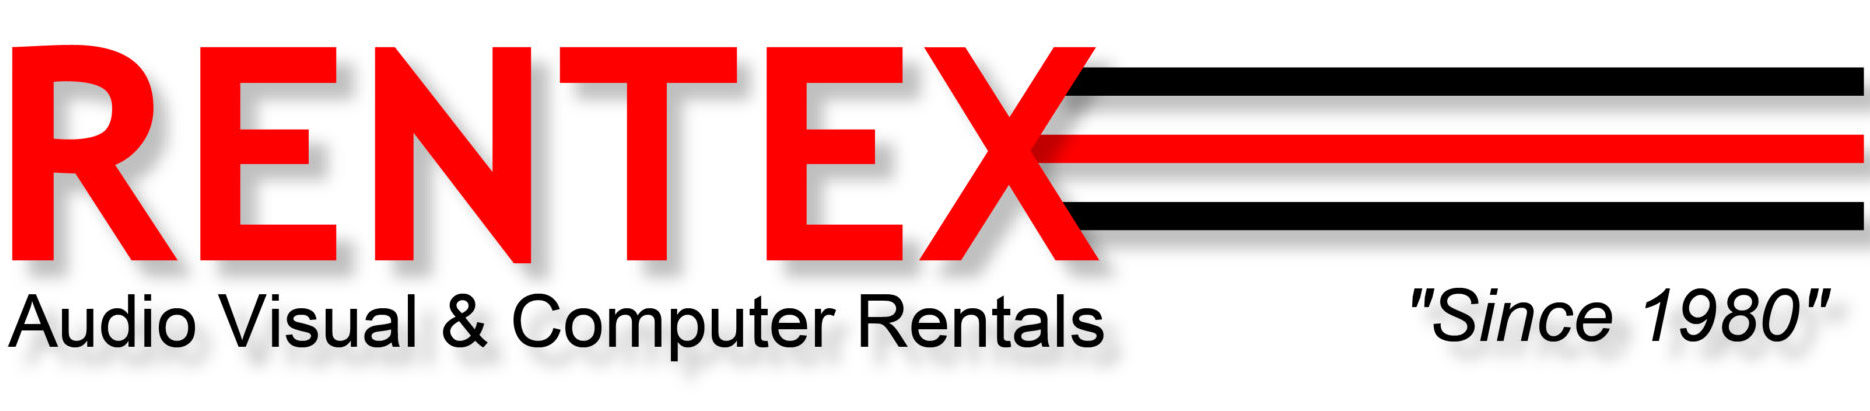 Rentex Audio Visual & Computer Rentals Adds Panasonic's PT-RZ21K and PT-RZ12K Laser Projectors to Nationwide Inventory